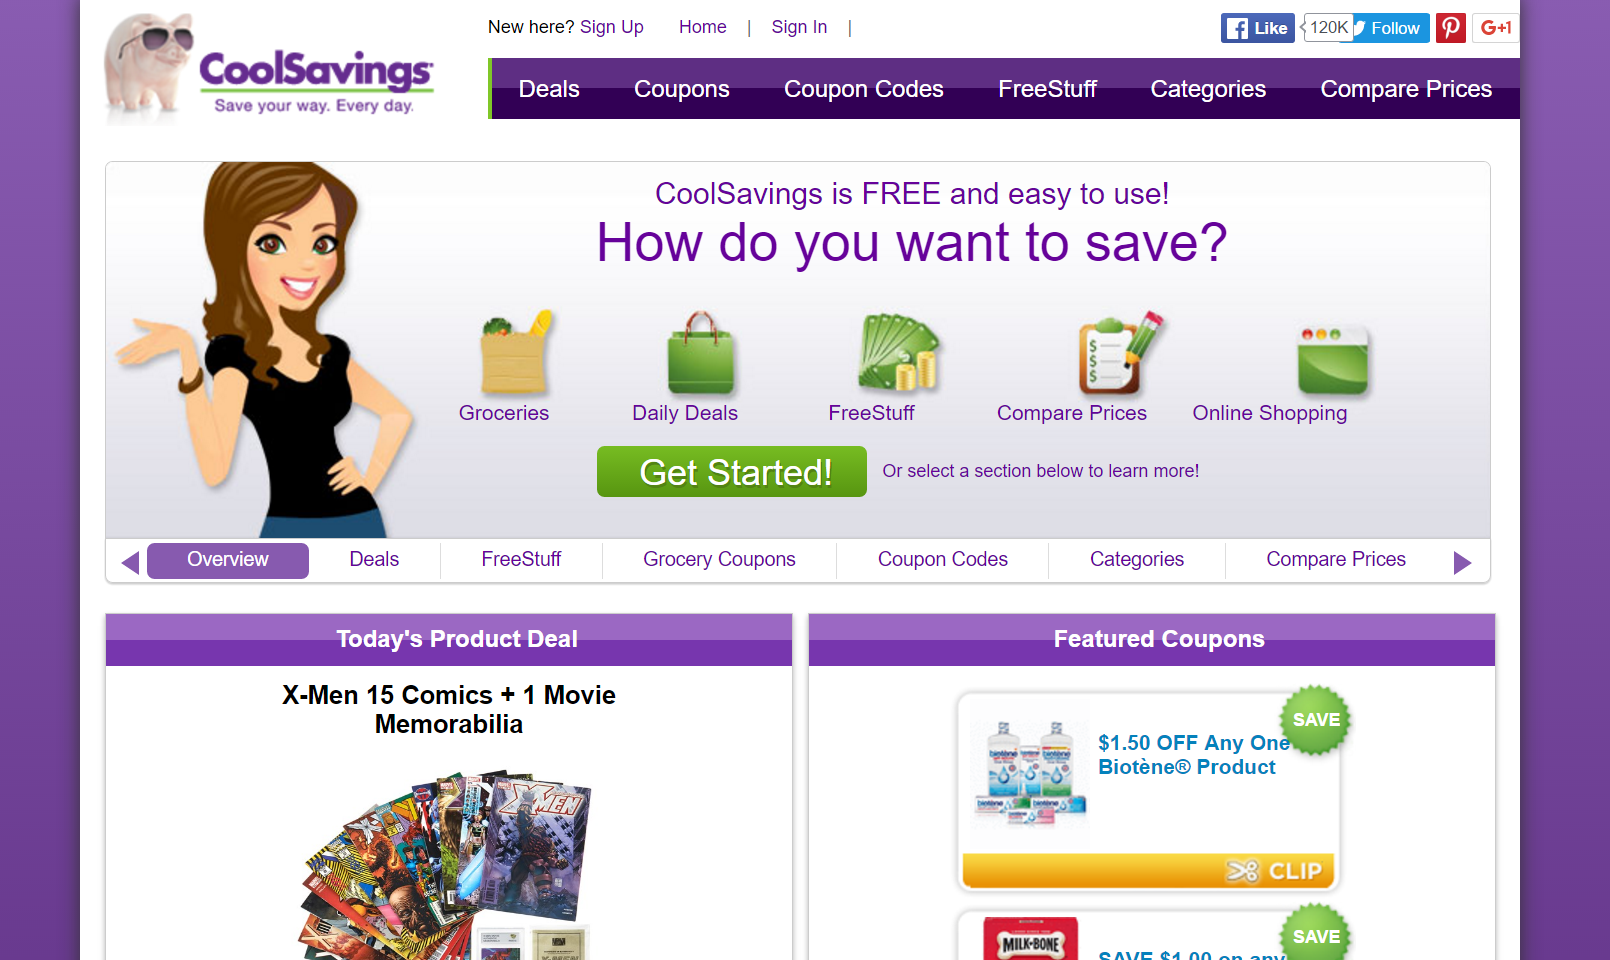 ads by CoolSavings